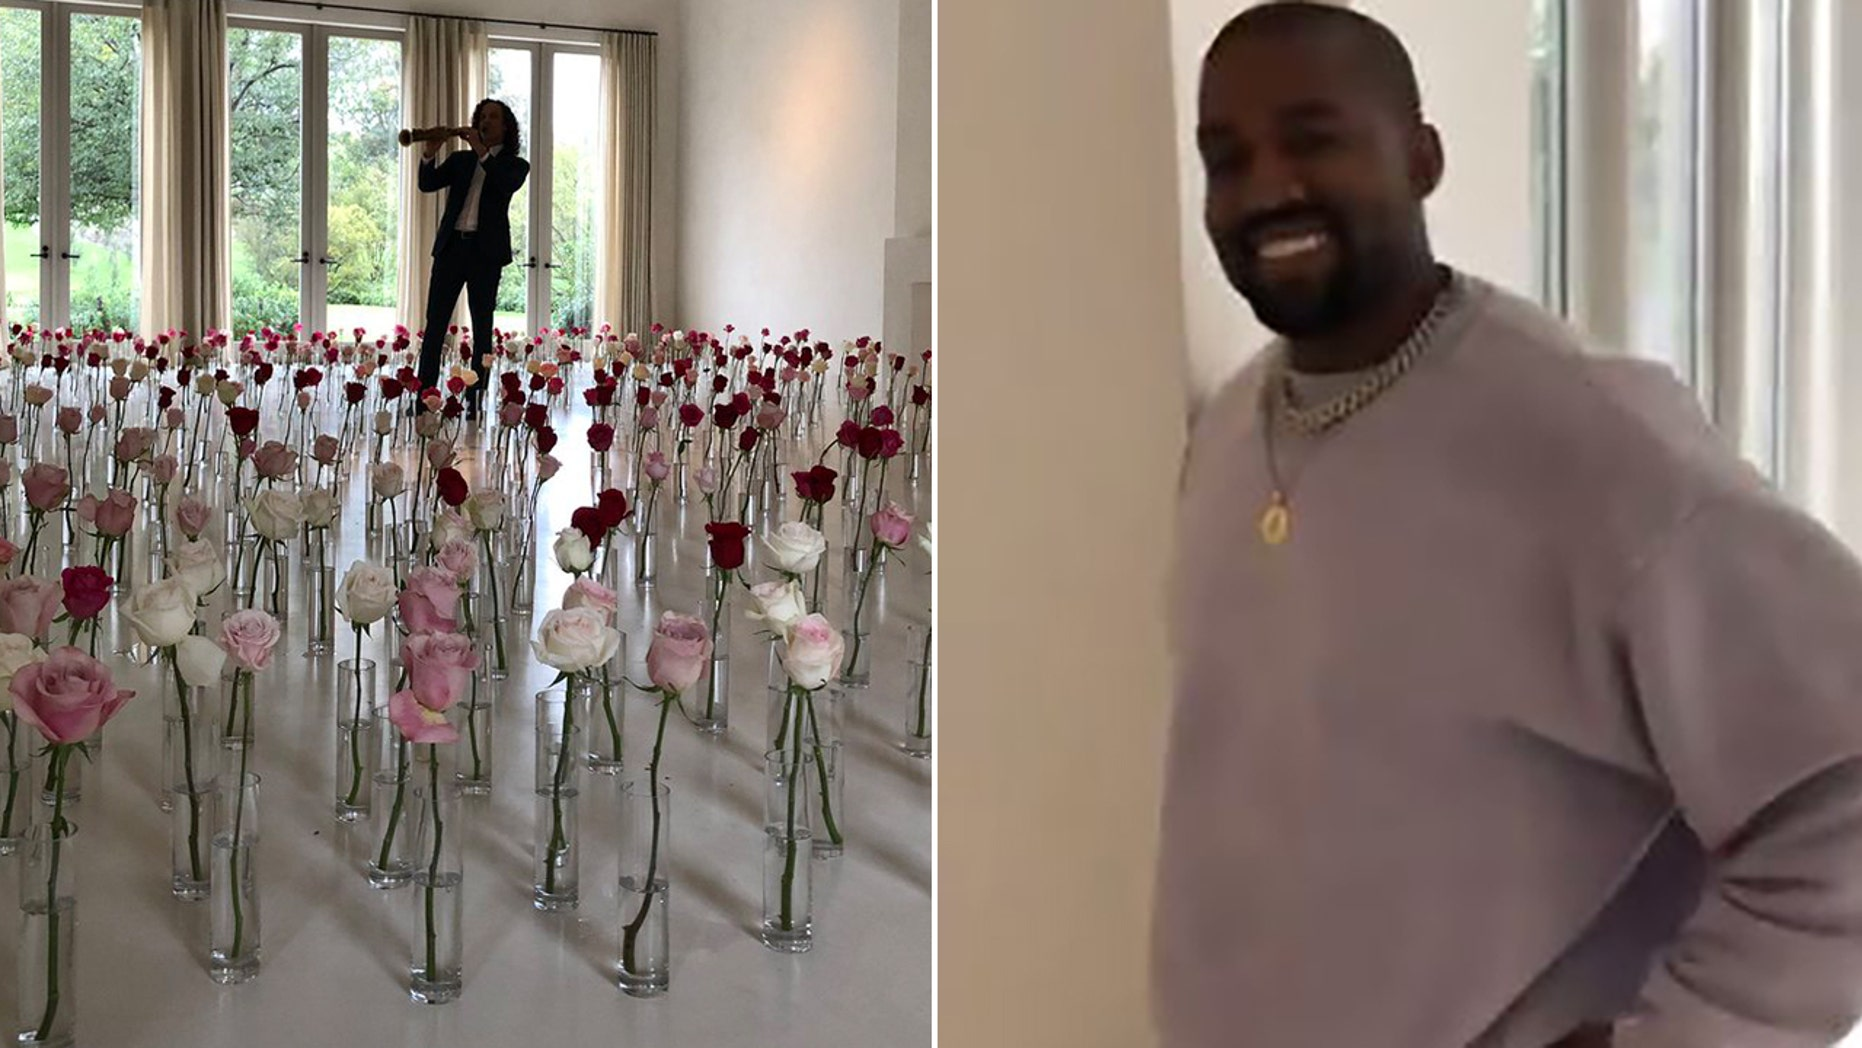 Kanye West surprised Kim Kardashian with a romantic Kenny G performance on Valentine's Day.